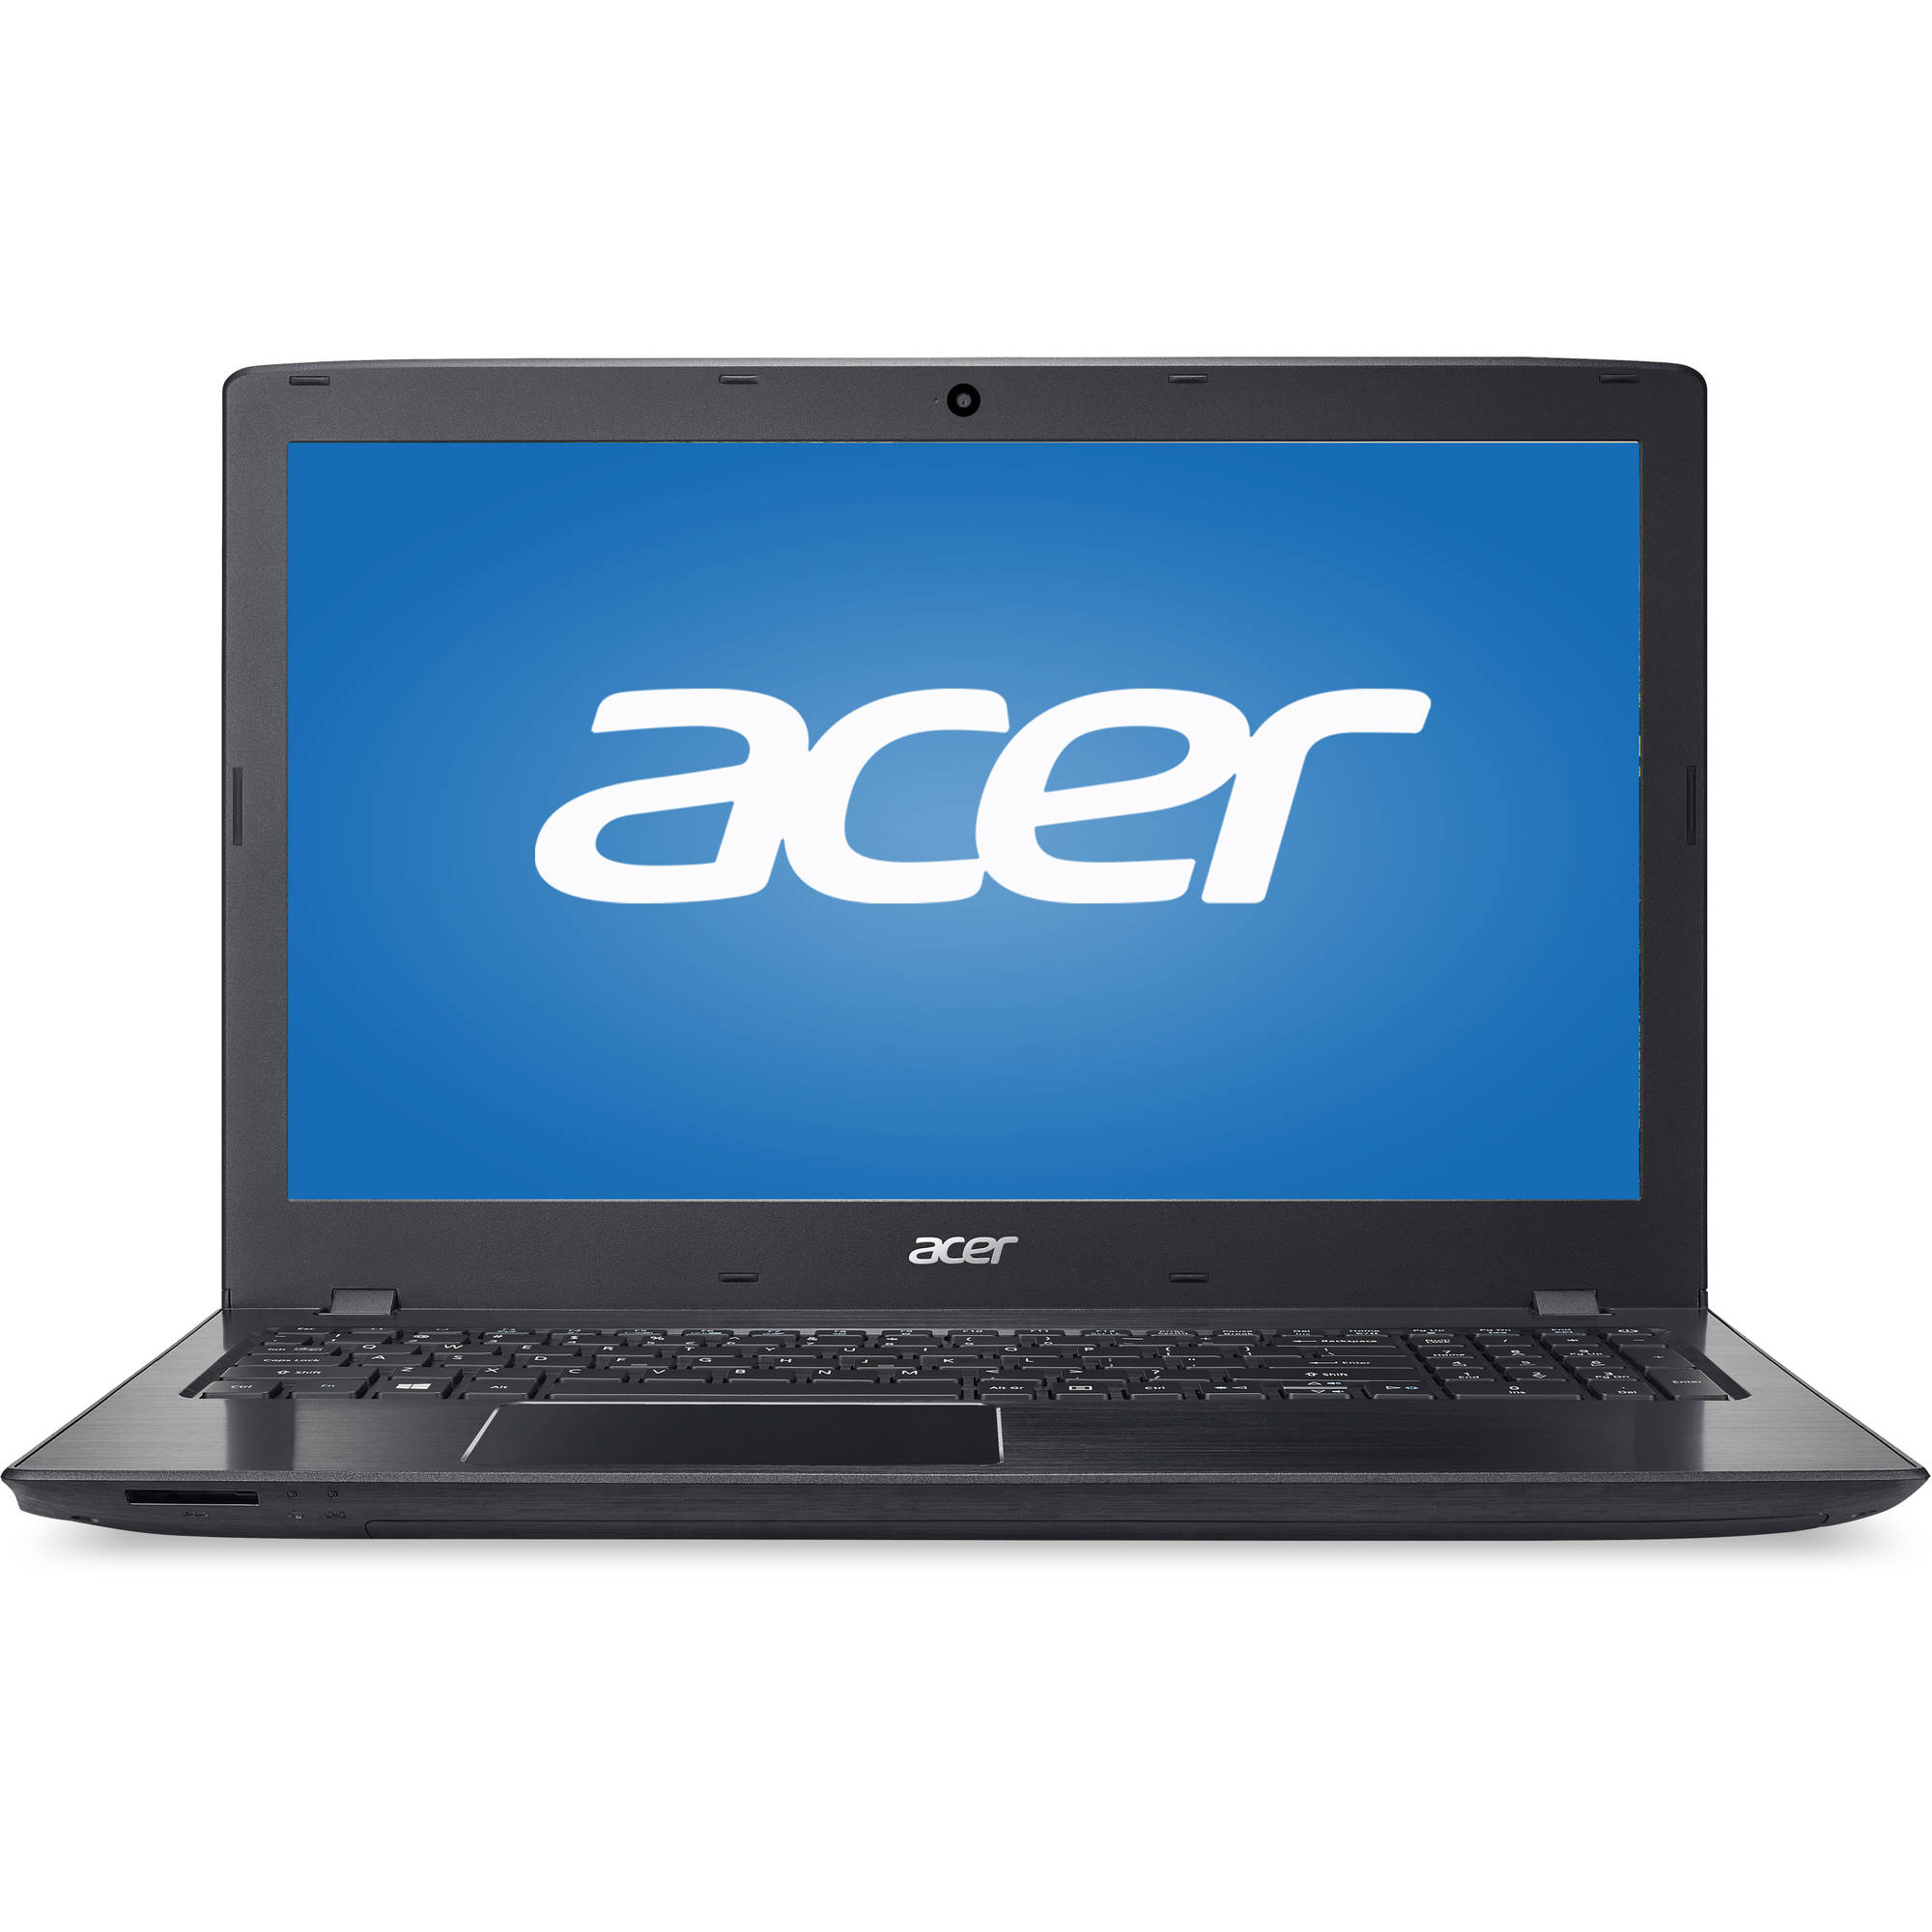 Download Drivers: Acer Aspire 9410Z Intel Graphics